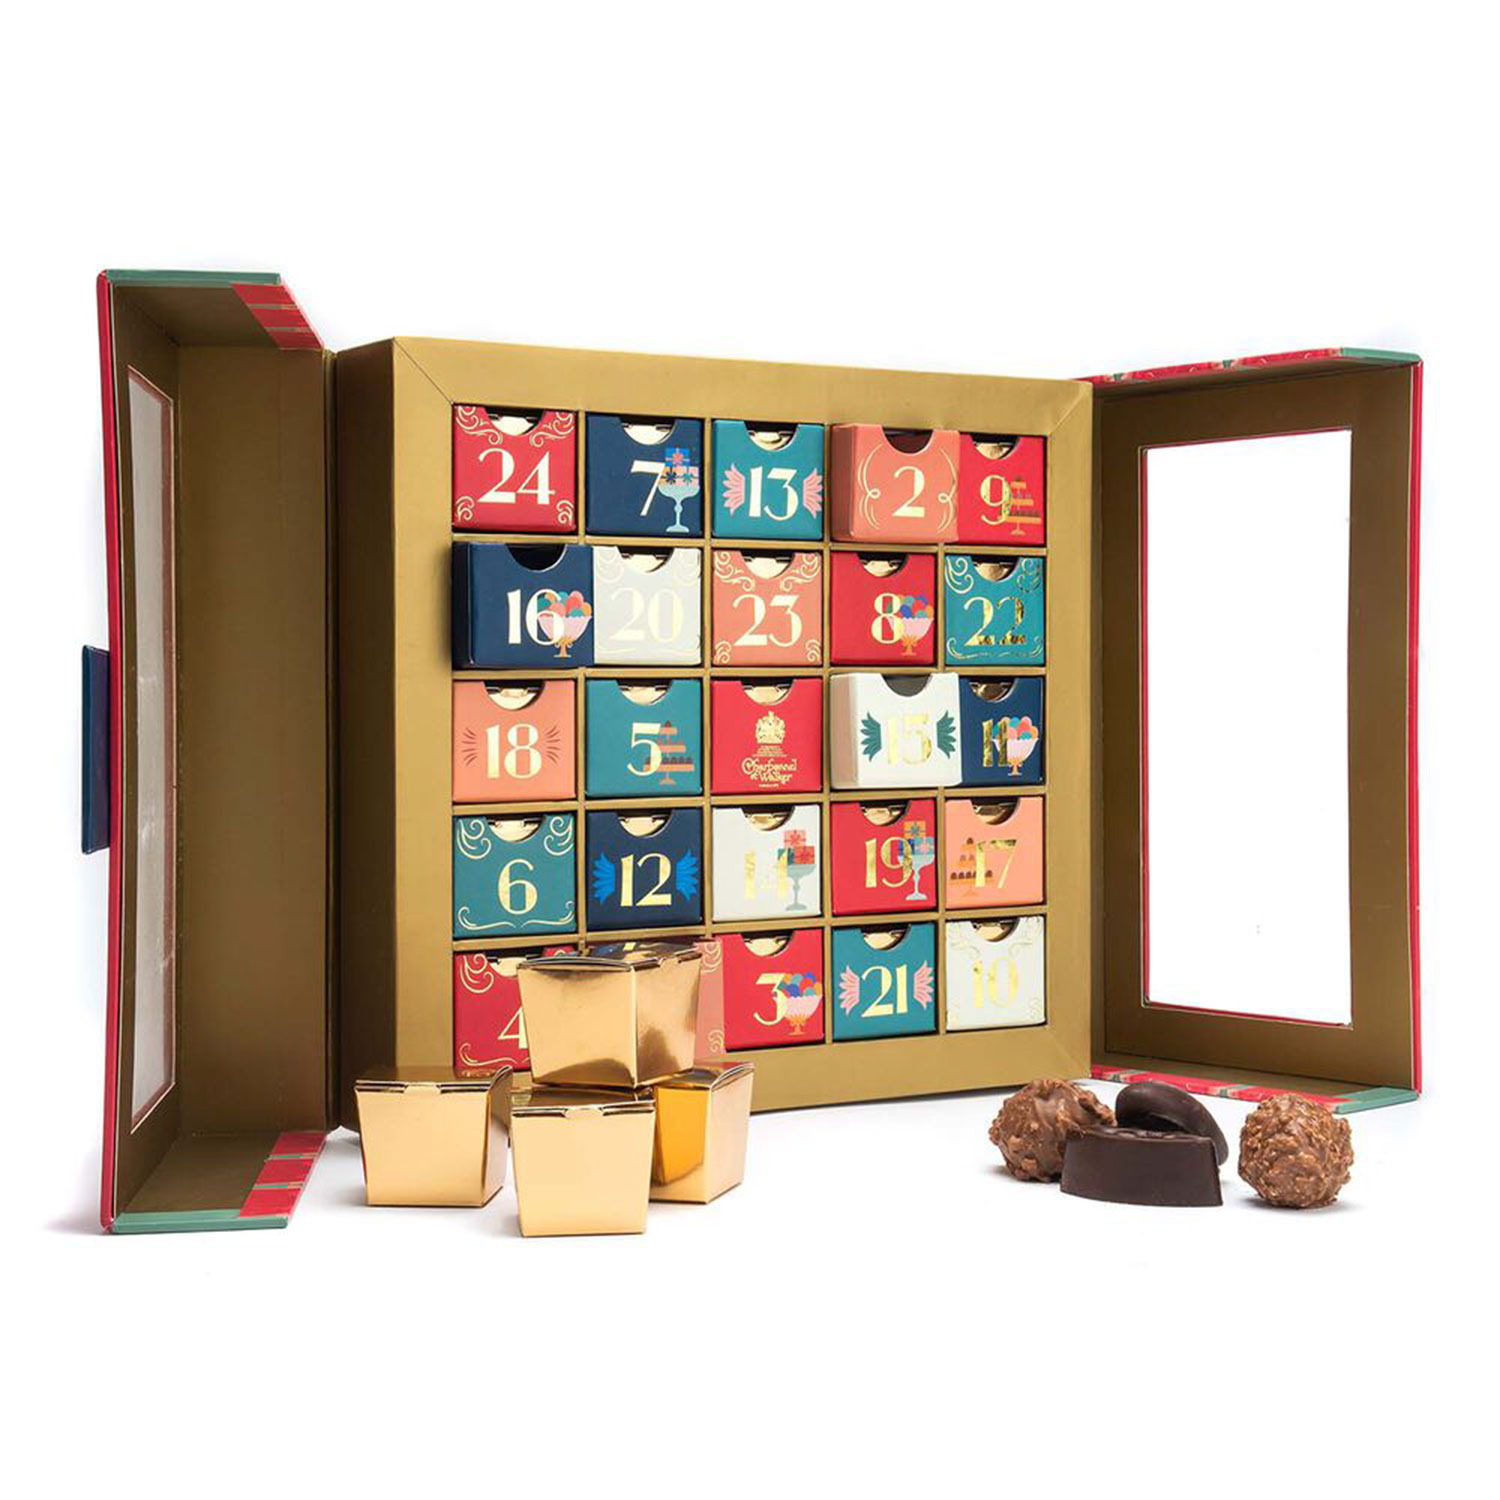 Charbonnel et Walker Chocolate and Truffle Advent Calendar